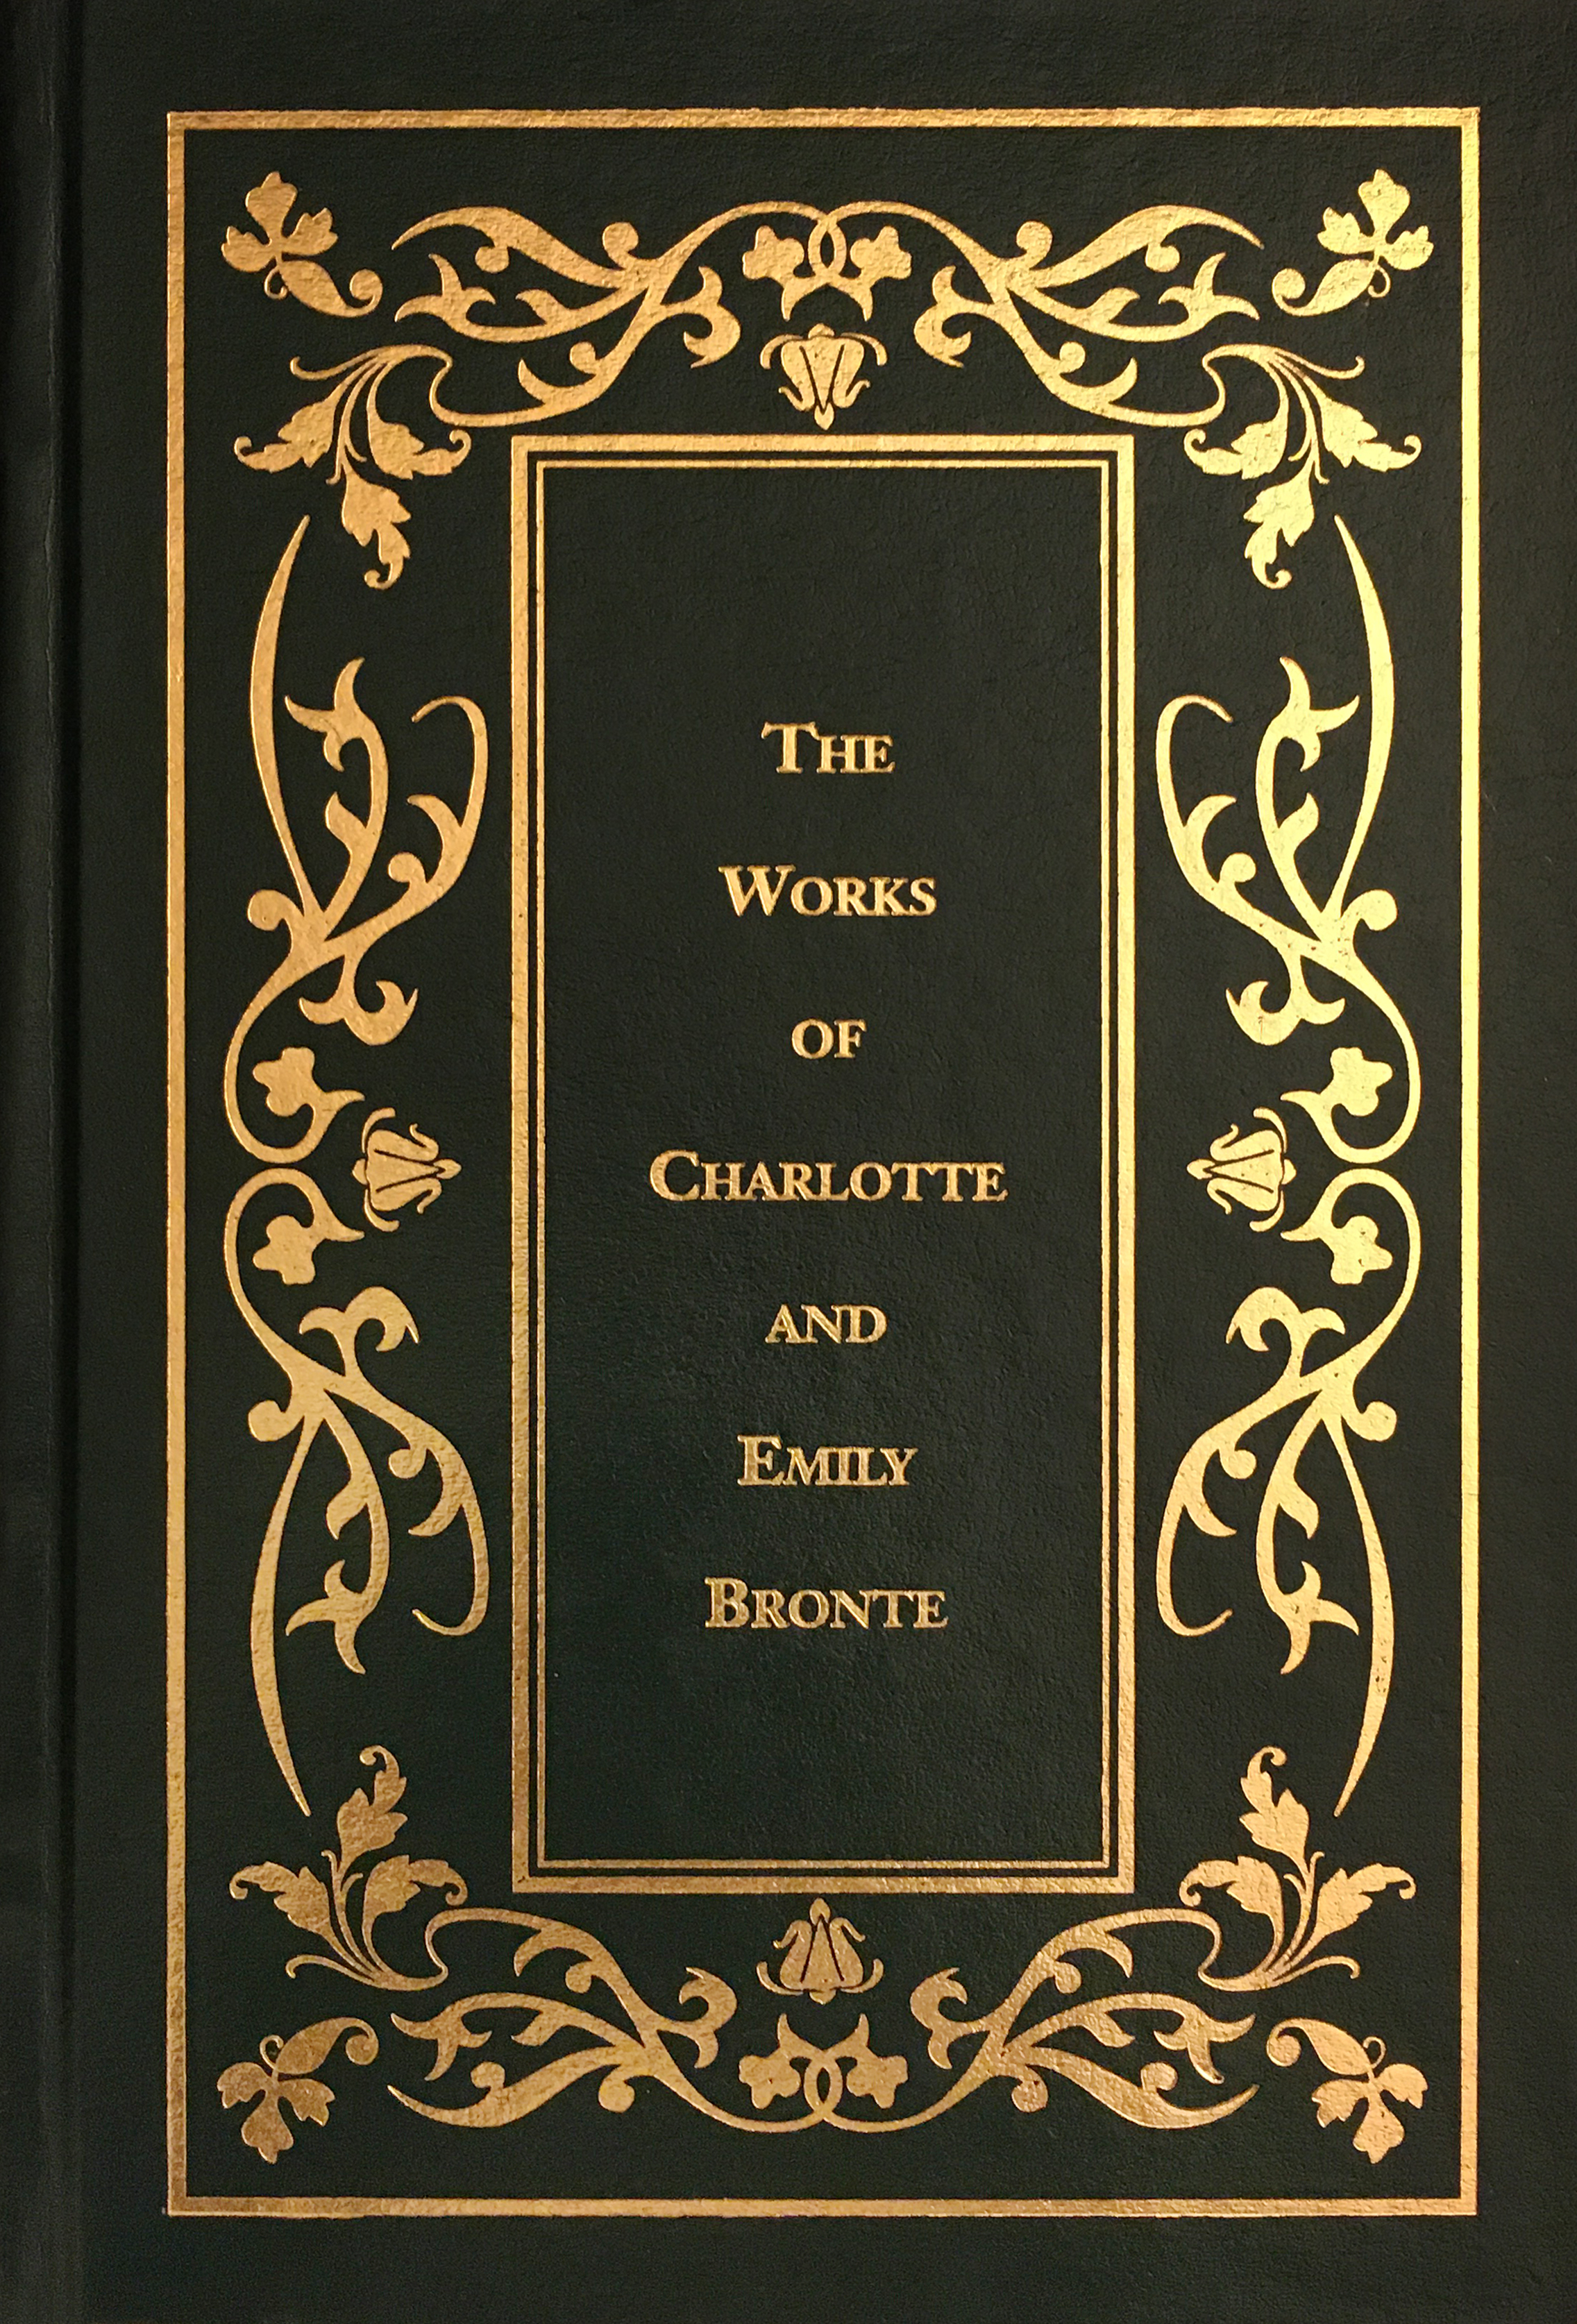 The Works of Charlotte and Emily Bronte